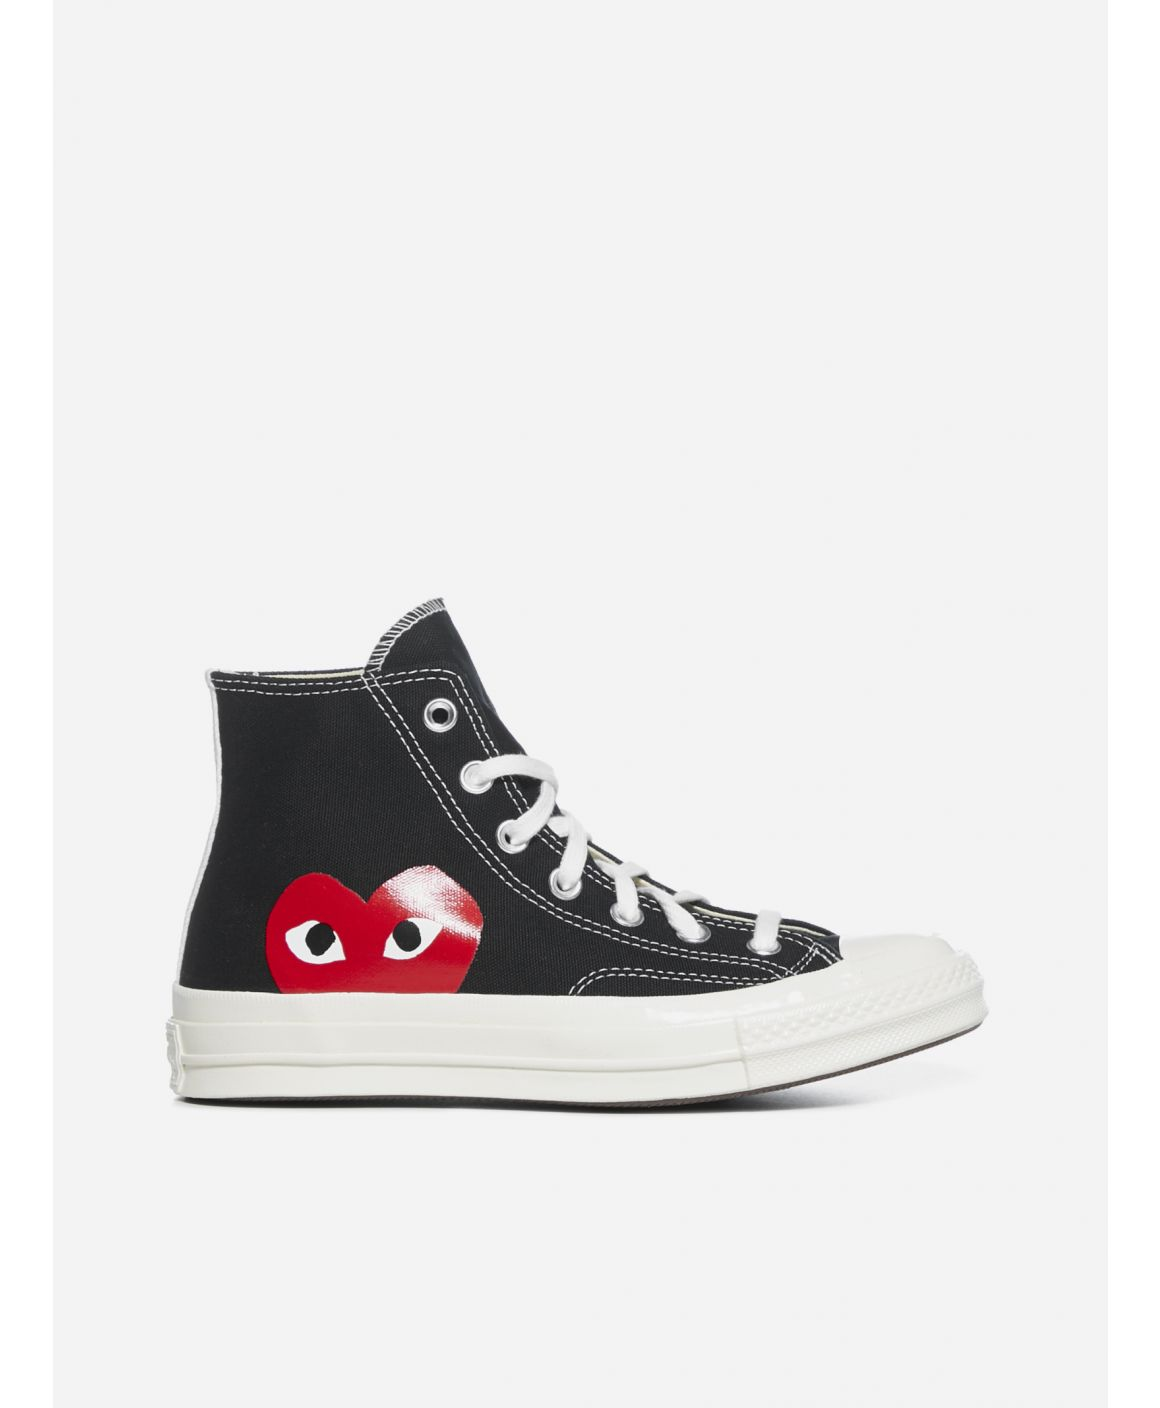 Heart print Chuck Taylor canvas high-top sneakers